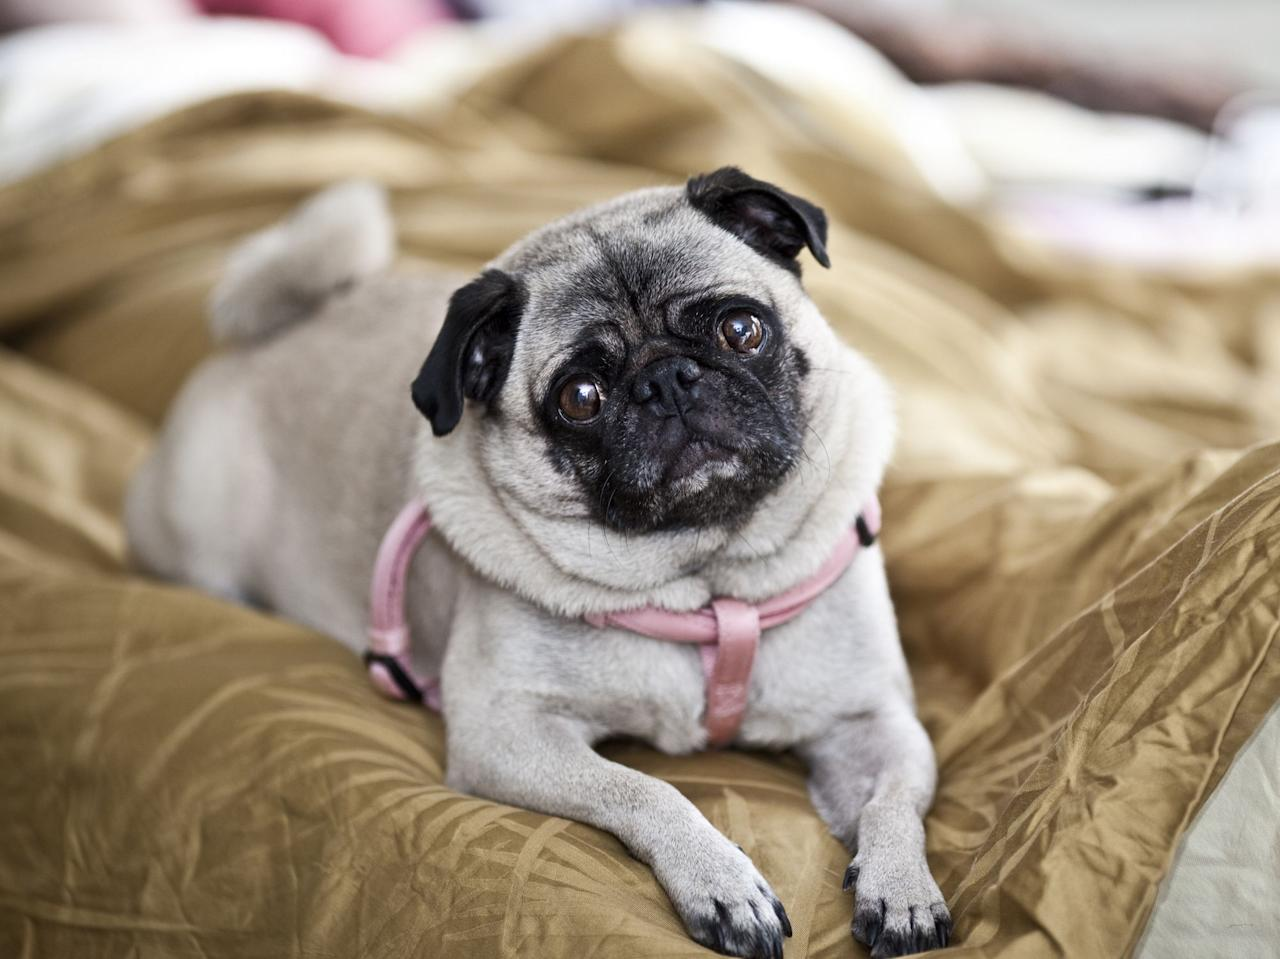 "<p>Keeping a dog in an apartment might seem like a bad idea at first, but there's a way to do it right. For starters, you'll want to look for a miniature dog breed that's suitable for apartments. But size isn't the only thing to consider: You'll also want to <a href=""https://www.thehonestkitchen.com/blog/tip-n-tricks-for-raising-a-dog-in-an-apartment/"" target=""_blank"">consider the dog's energy level</a>, according to The Honest Kitchen.</p><p>Apartment dwellers should look for <a href=""https://www.akc.org/dog-breeds/best-dogs-for-apartments-dwellers/"" target=""_blank"">breeds with moderate to lower</a> levels of energy, as they won't require a huge backyard to run around in, and could instead get plenty of exercise on short walks and while playing indoors. Dog owners with tiny apartments should also be prepared to invest time in training their dog so that it behaves appropriately in an apartment. Some small dog breeds, even if they're suitable for apartments in every other way, are very chatty and will need training to discourage barking and keep your neighbors happy. </p><p>Regardless of your dog's breed and training, no pup spend all day alone in the apartment. If you work away from home you should <a href=""https://www.apartmentguide.com/blog/happy-and-healthy-dog-small-apartment/"" target=""_blank"">hire a dog walker</a> or pet sitter to spend some time with your pup while you're away. </p><p>Now that you have most of the facts, here are some miniature dog breeds whose energy levels make them perfect for tiny living spaces. </p>"